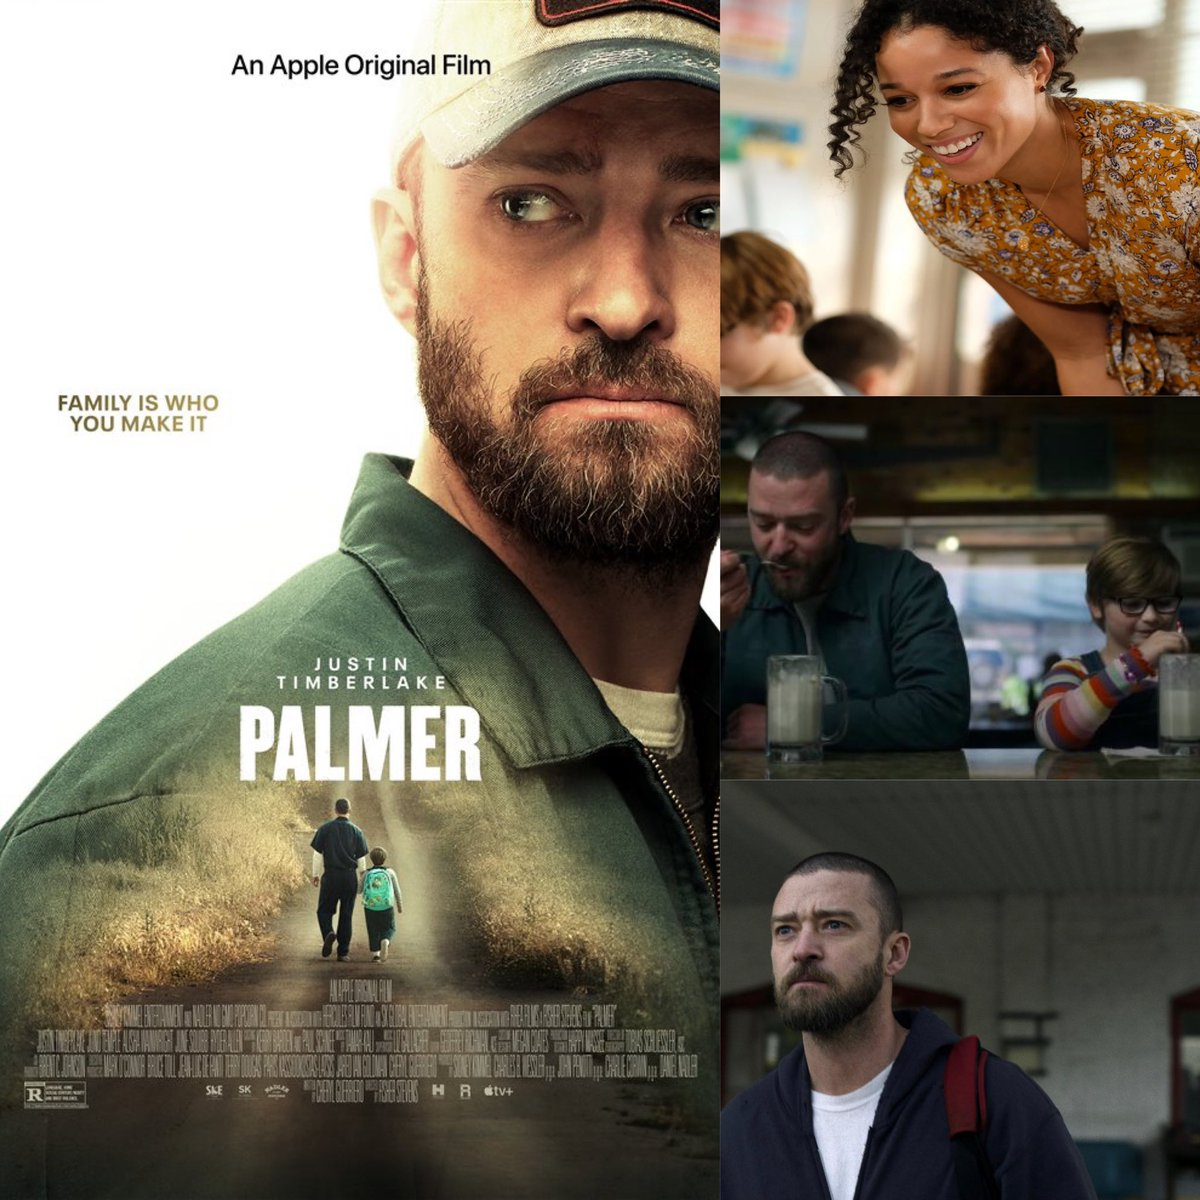 A touching story with a good message.  It's not great but an overall decent film with sweet performances that I did enjoy.  It's worth the watch #palmer #fisherstevens #cherylguerriero #anappleoriginalfilm #justintimberlake #ryderallen #alishawainwright #harryatthemovies